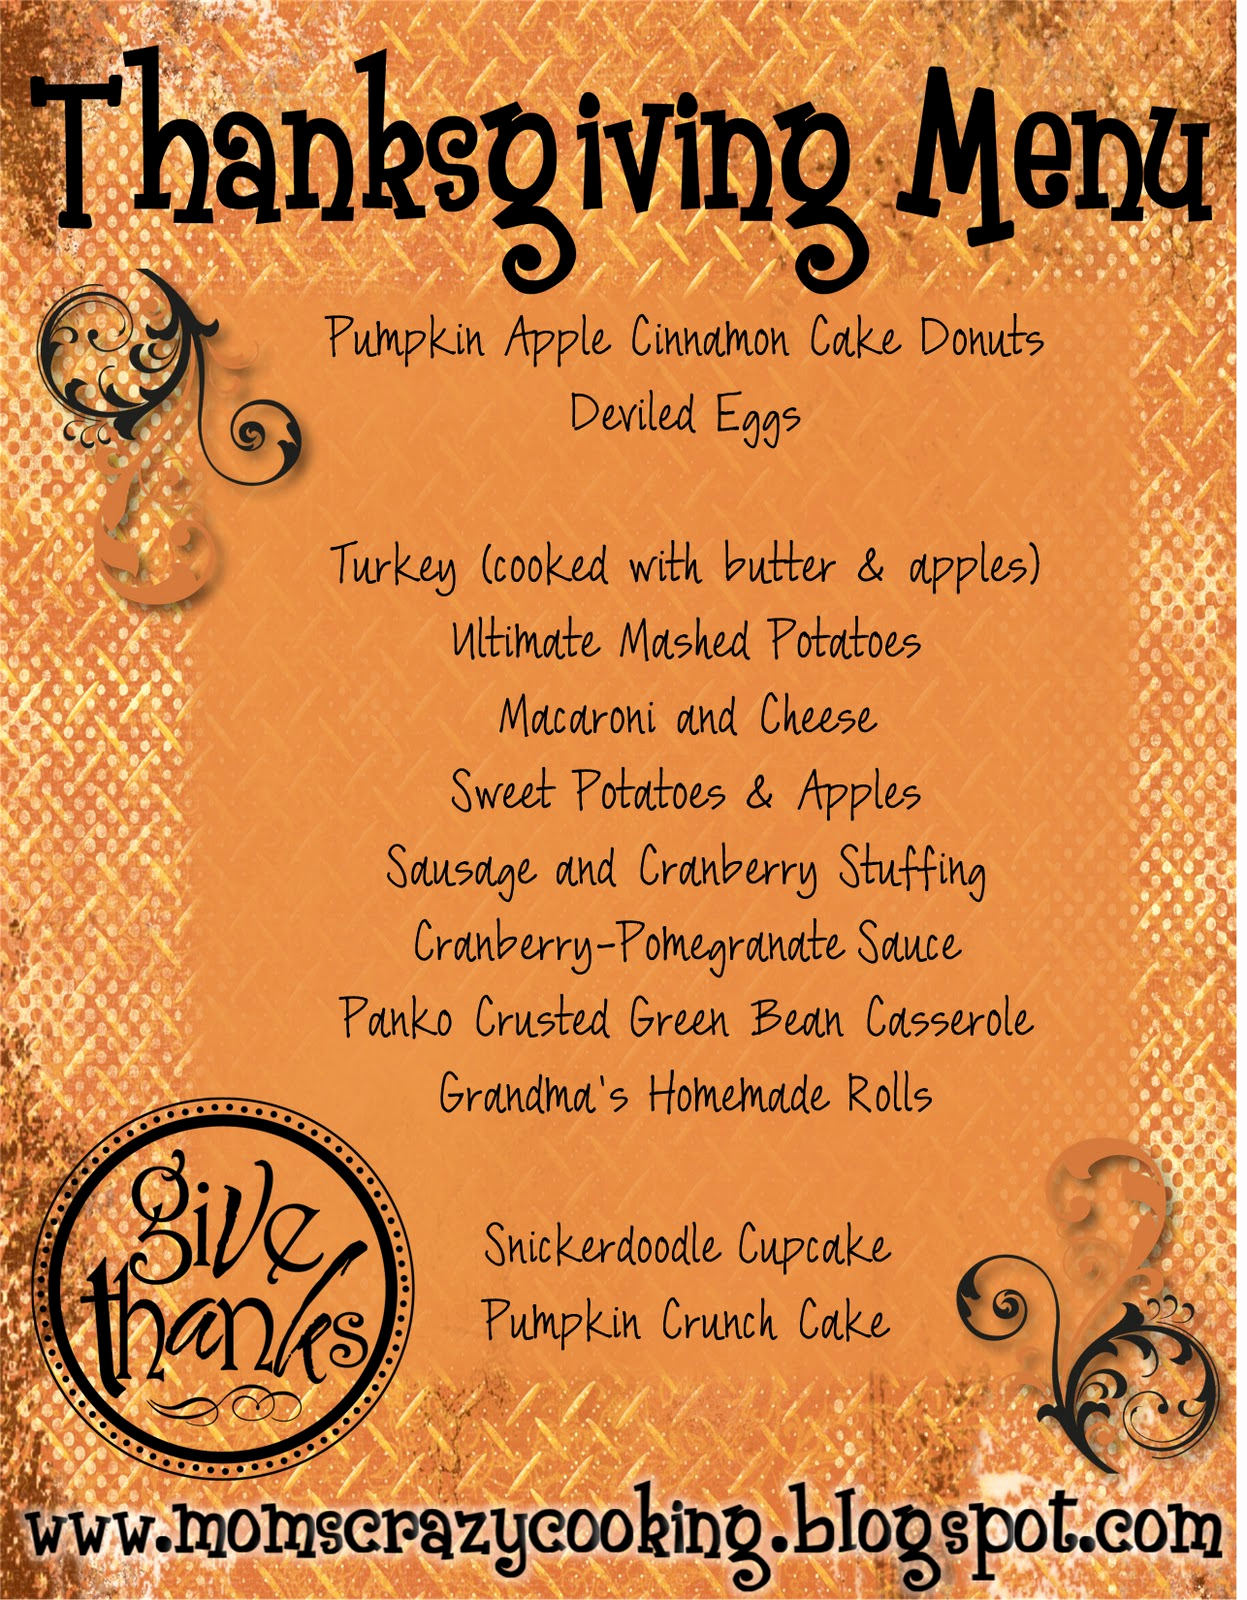 Soul Food Menu Template Unique Moms Crazy Cooking Thanksgiving Turkey Treats & My